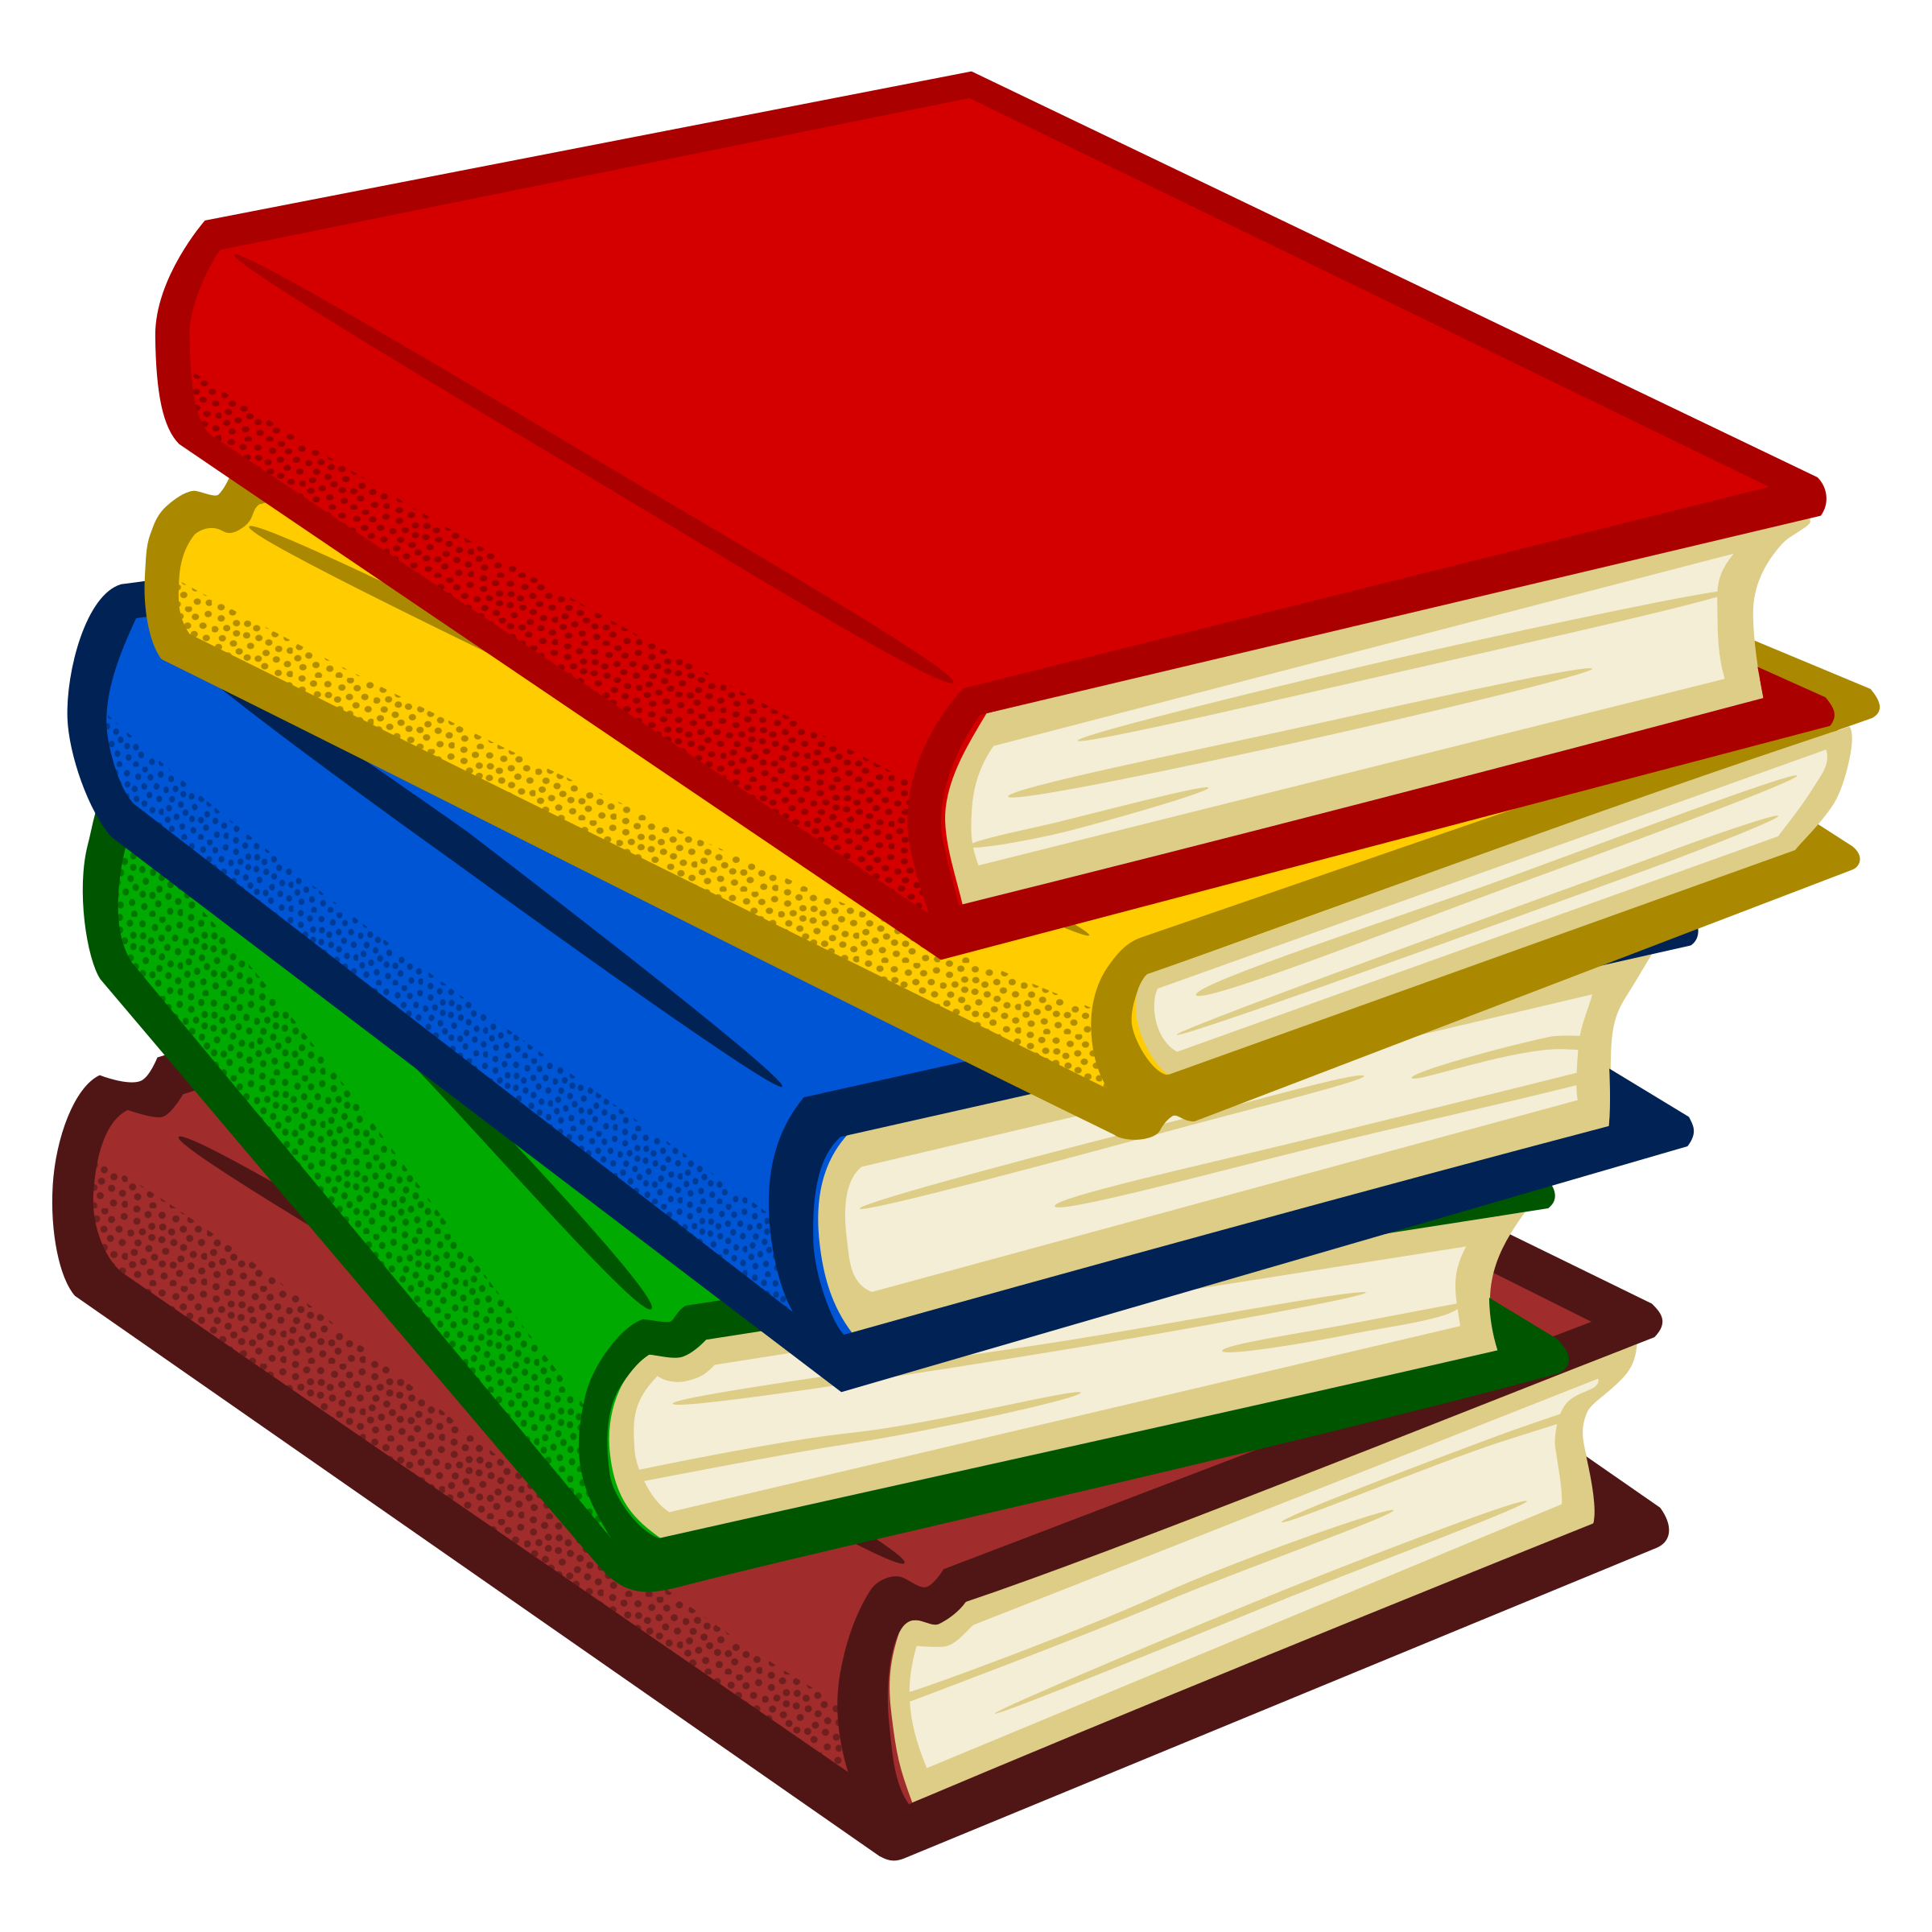 Book collection clipart picture library download Clipart - books - coloured picture library download